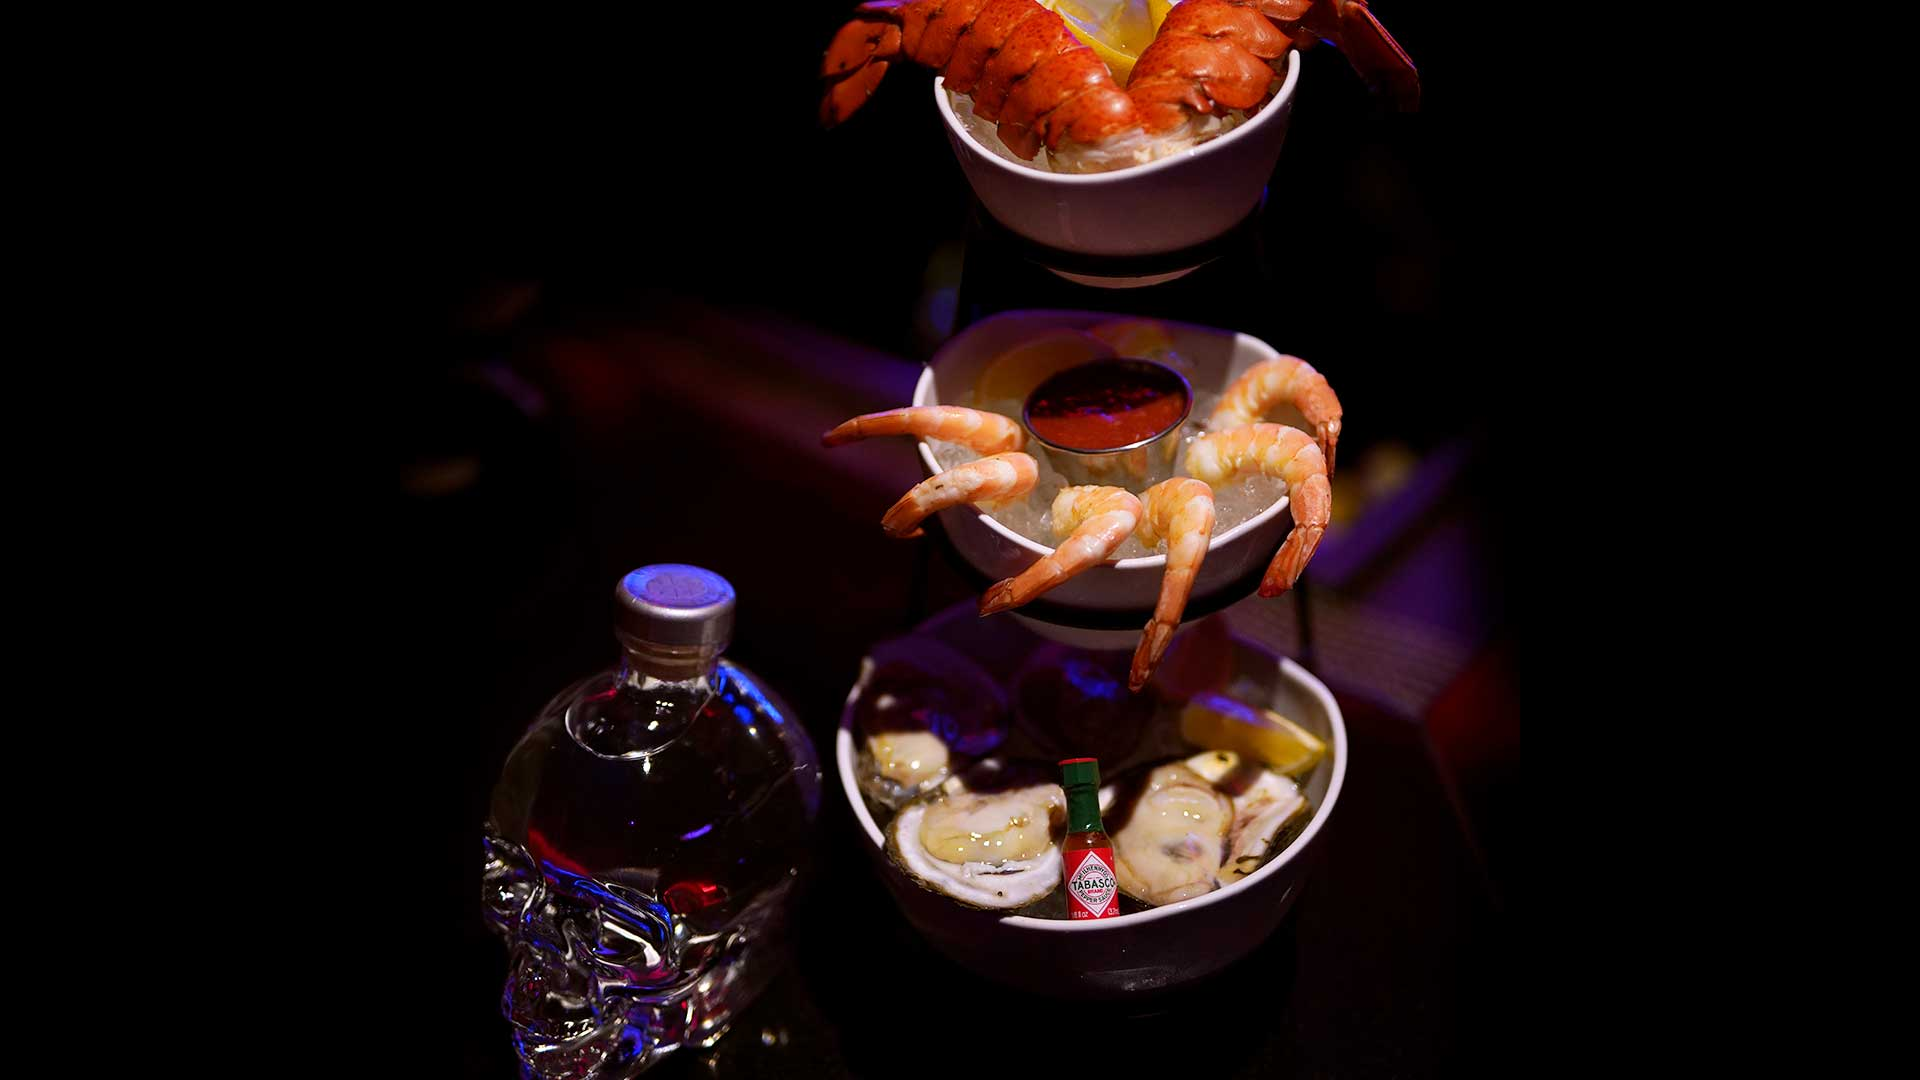 Image of seafood tower and crystal skull vodka